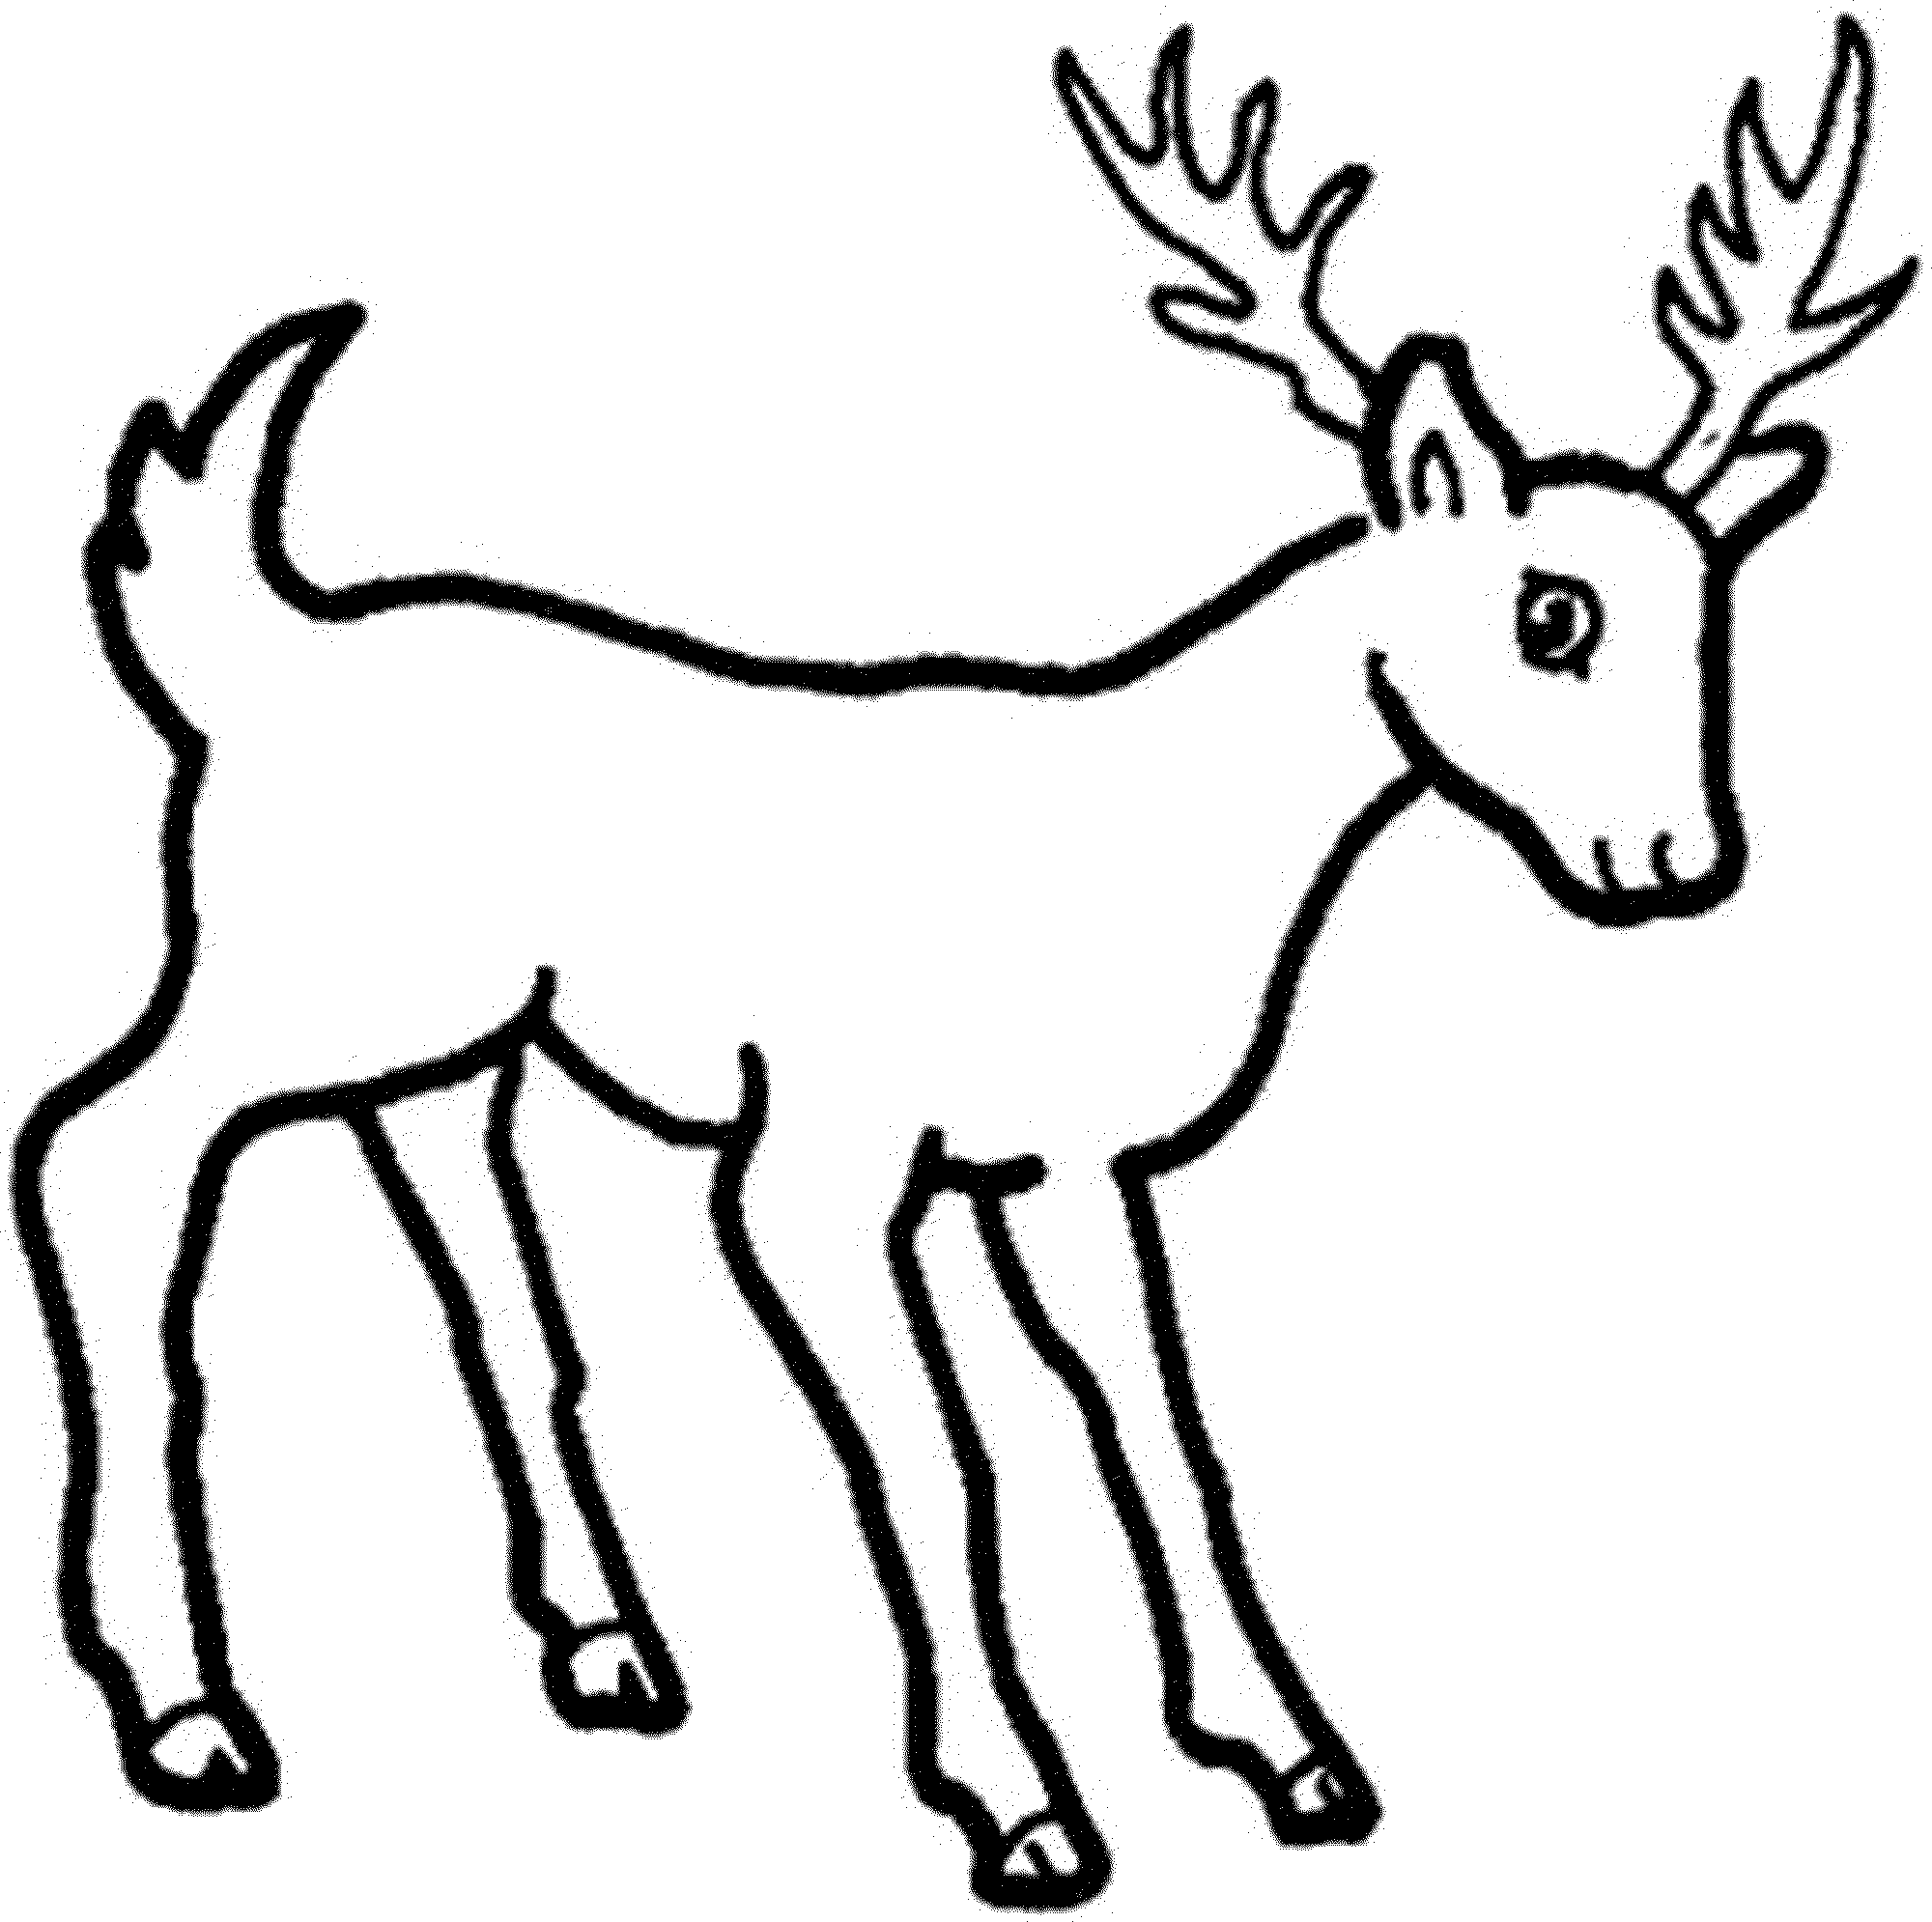 2000x1990 Fabulous Cartoon Deer Coloring Pages With Deer Coloring Pages